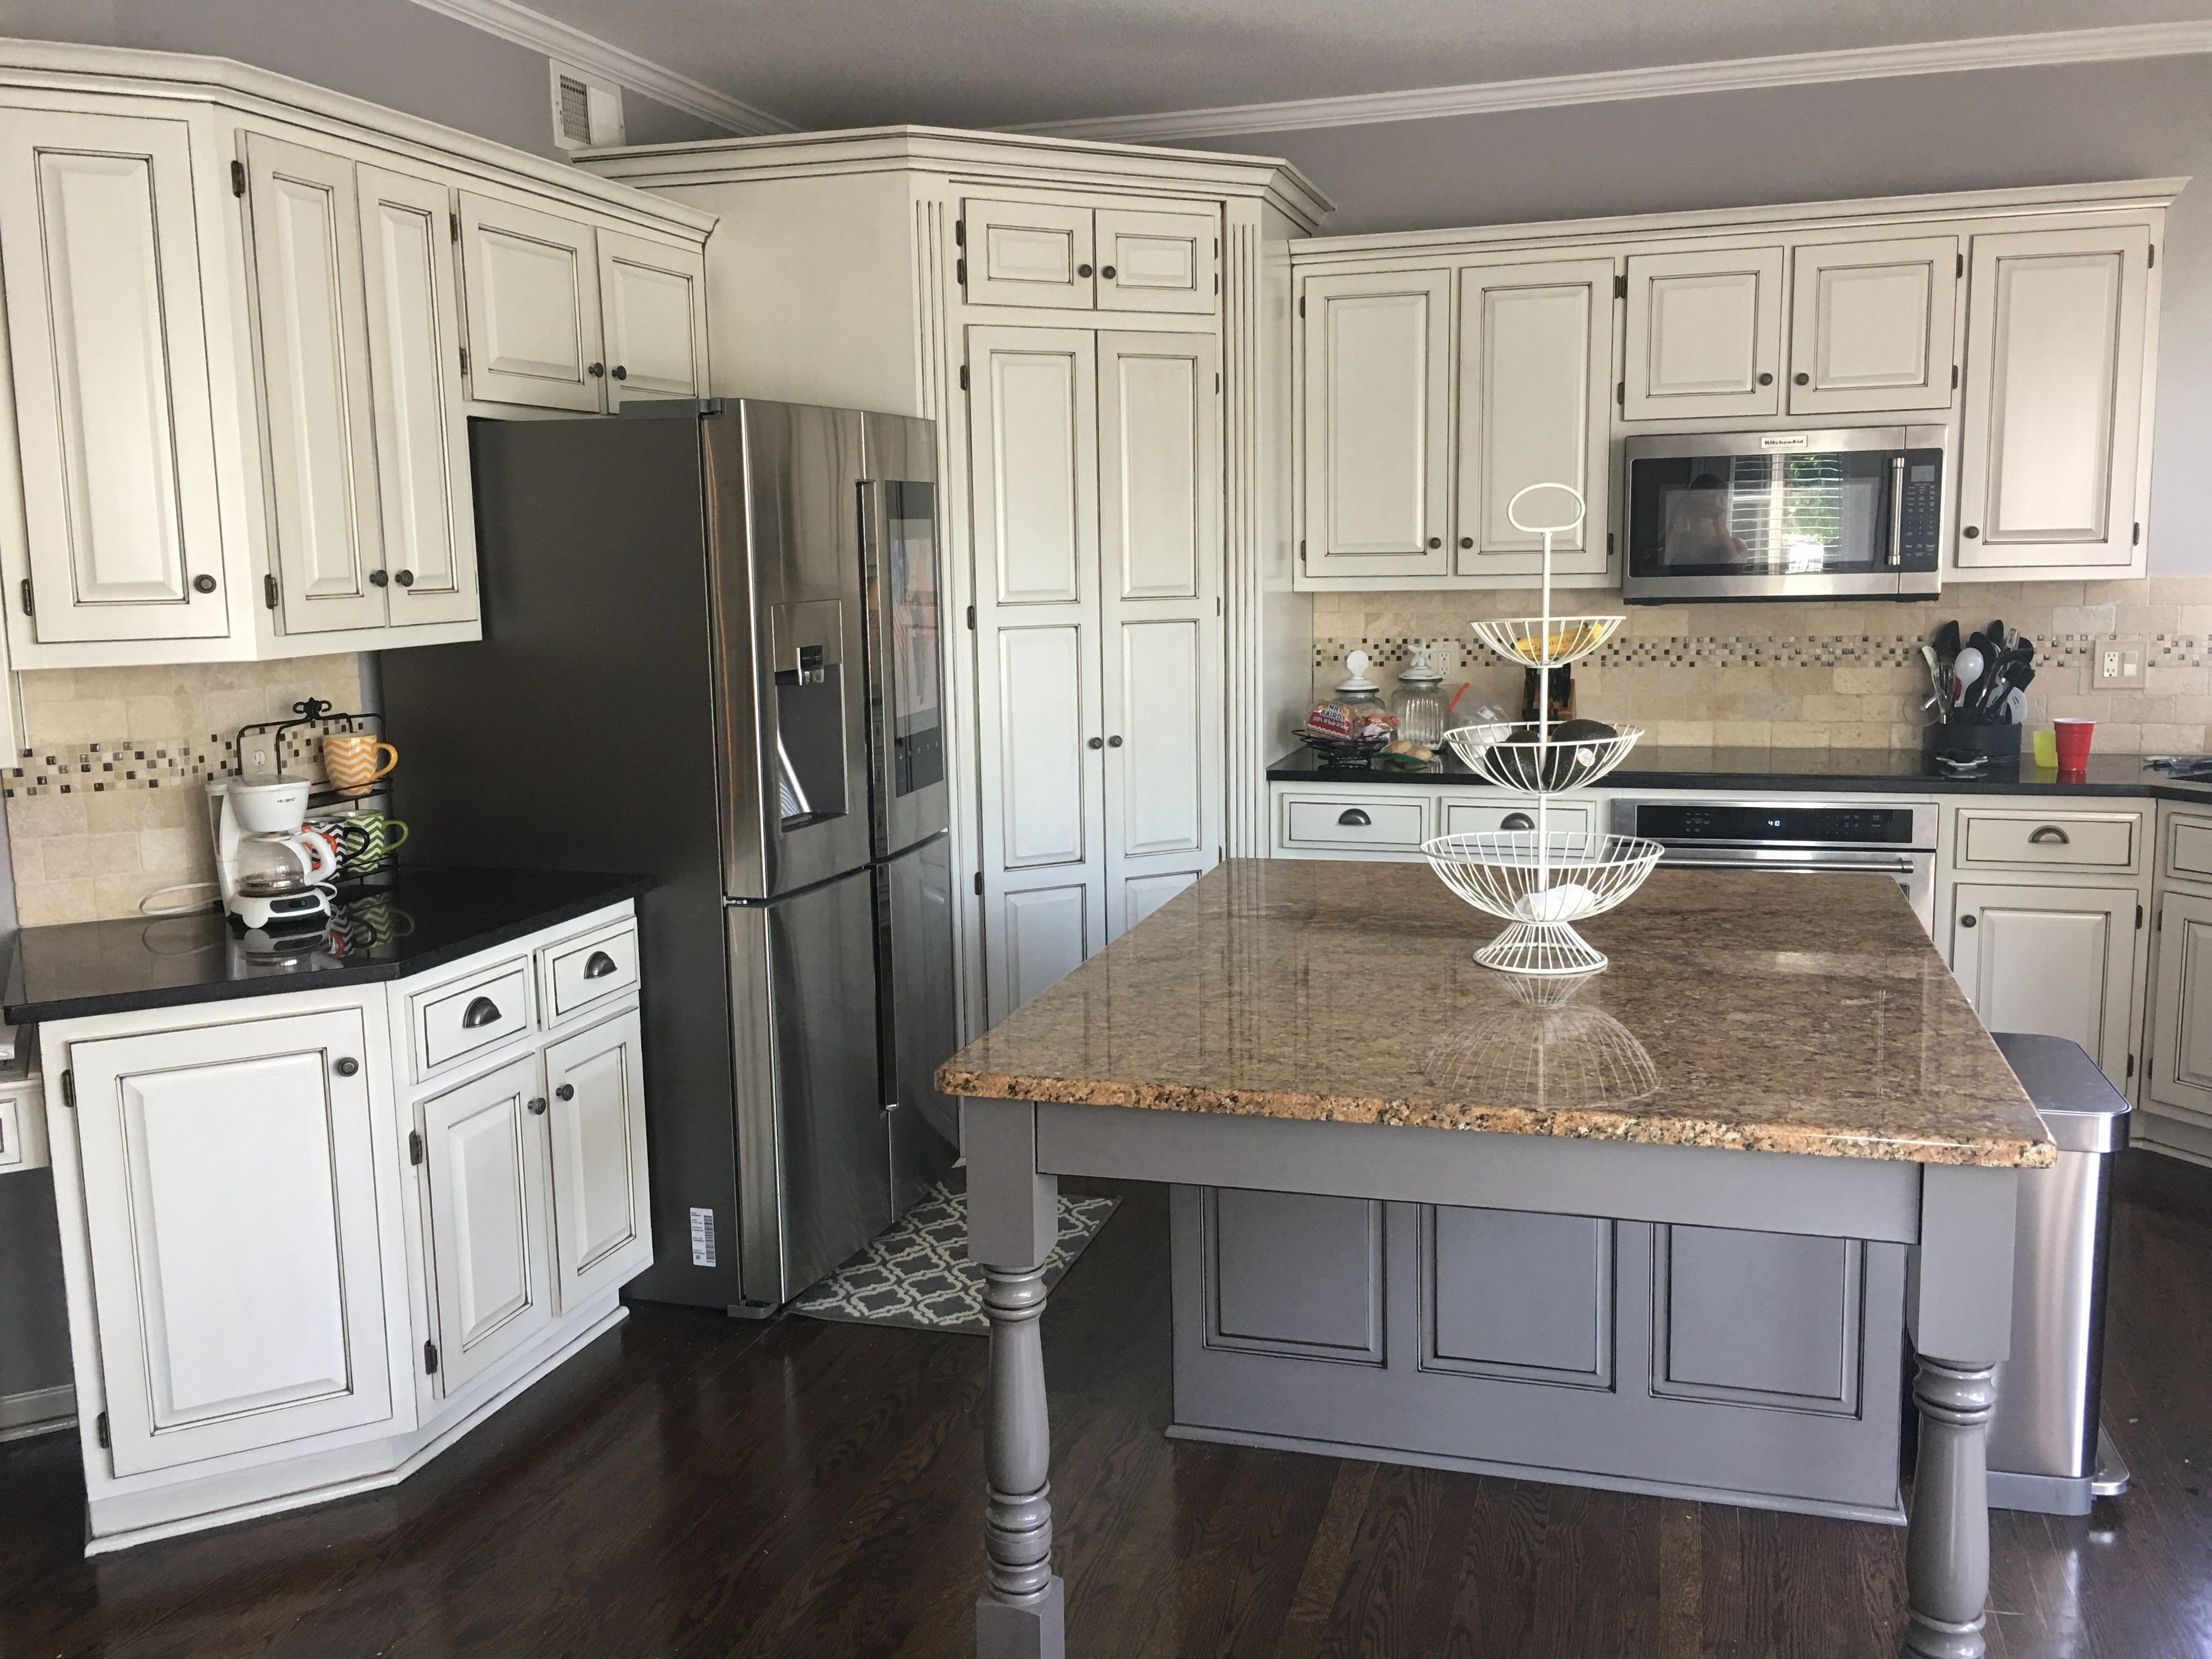 Kitchen Remodel Glazed White Cabinets Black Granite With ...